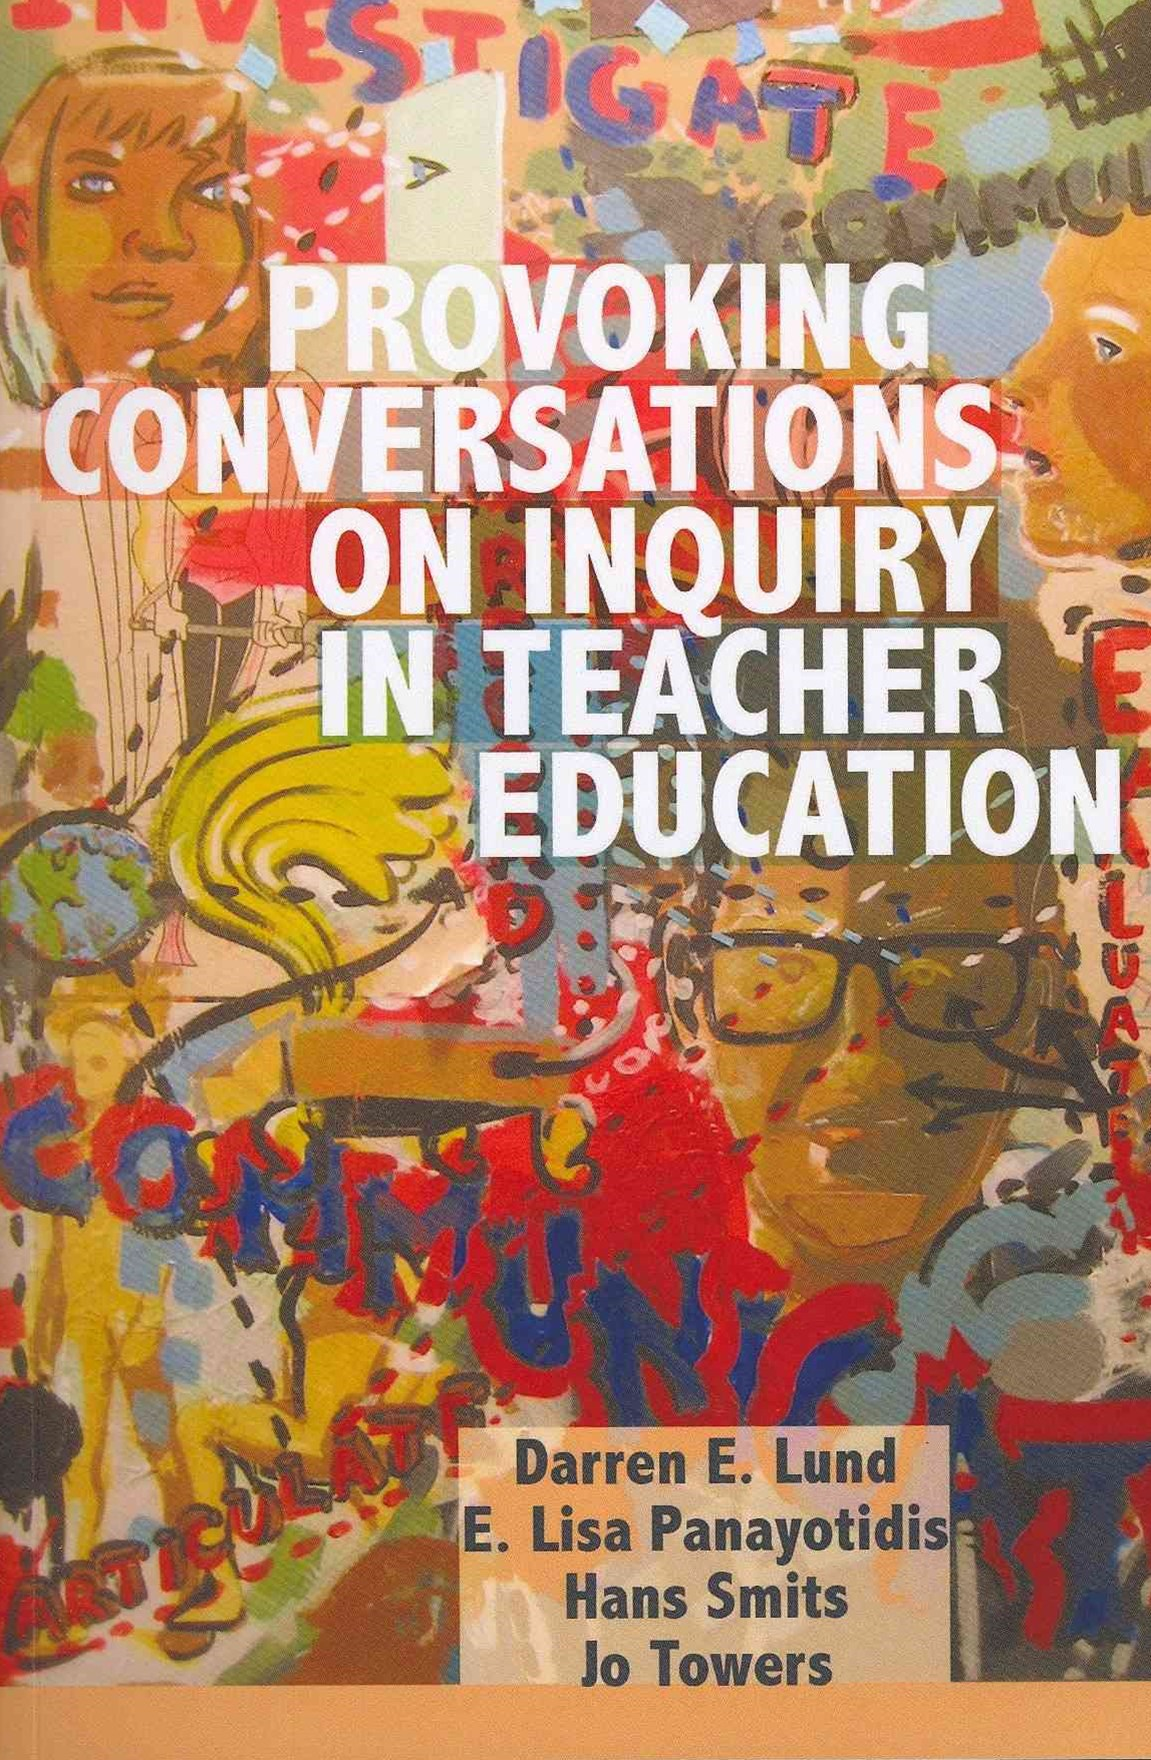 Provoking Conversations on Inquiry in Teacher Education